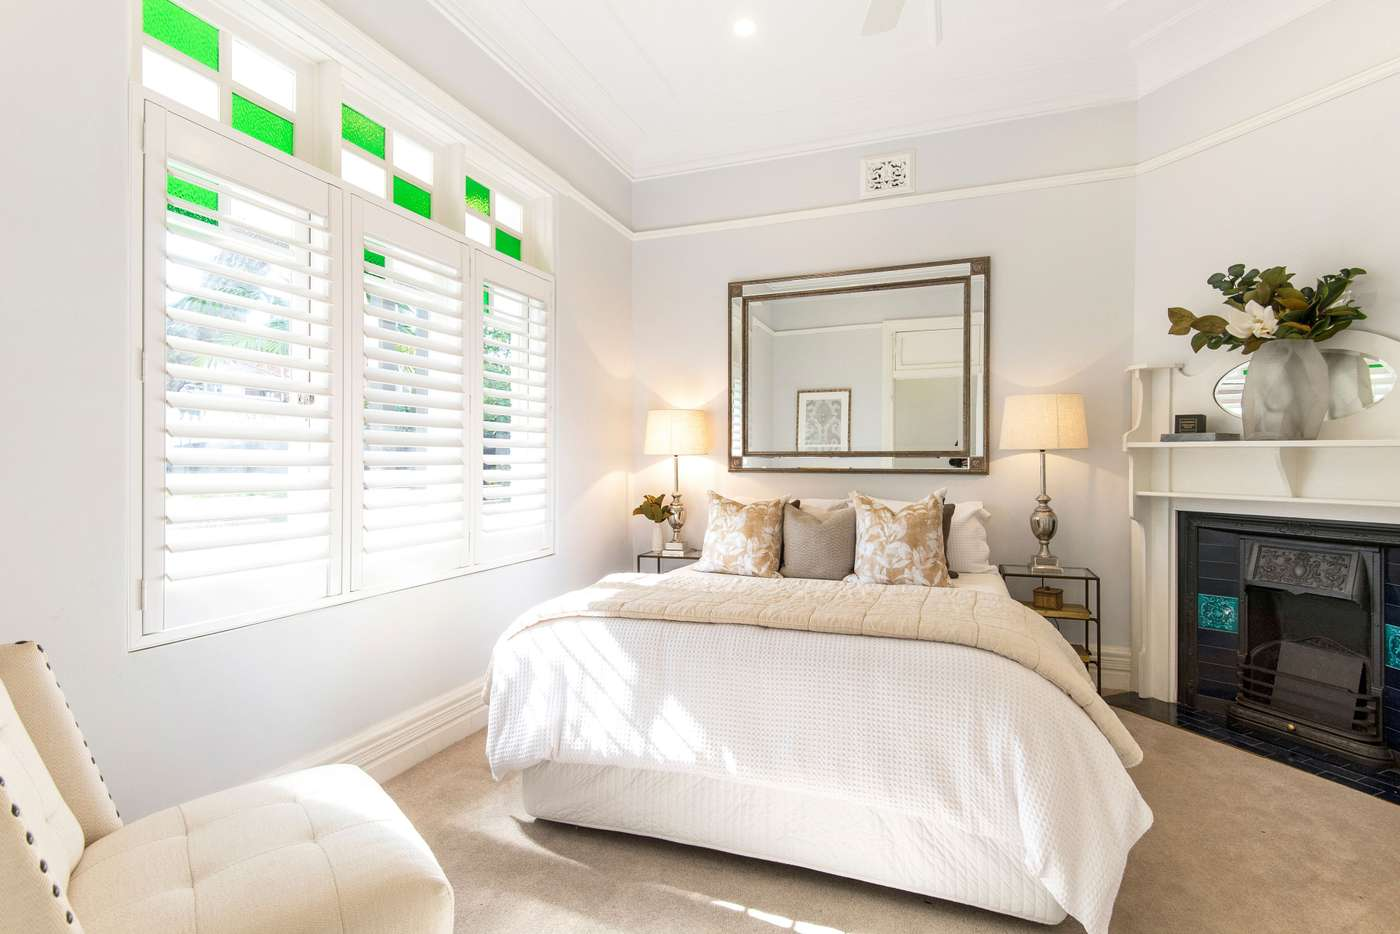 Fifth view of Homely house listing, 96 Spencer Road, Mosman NSW 2088